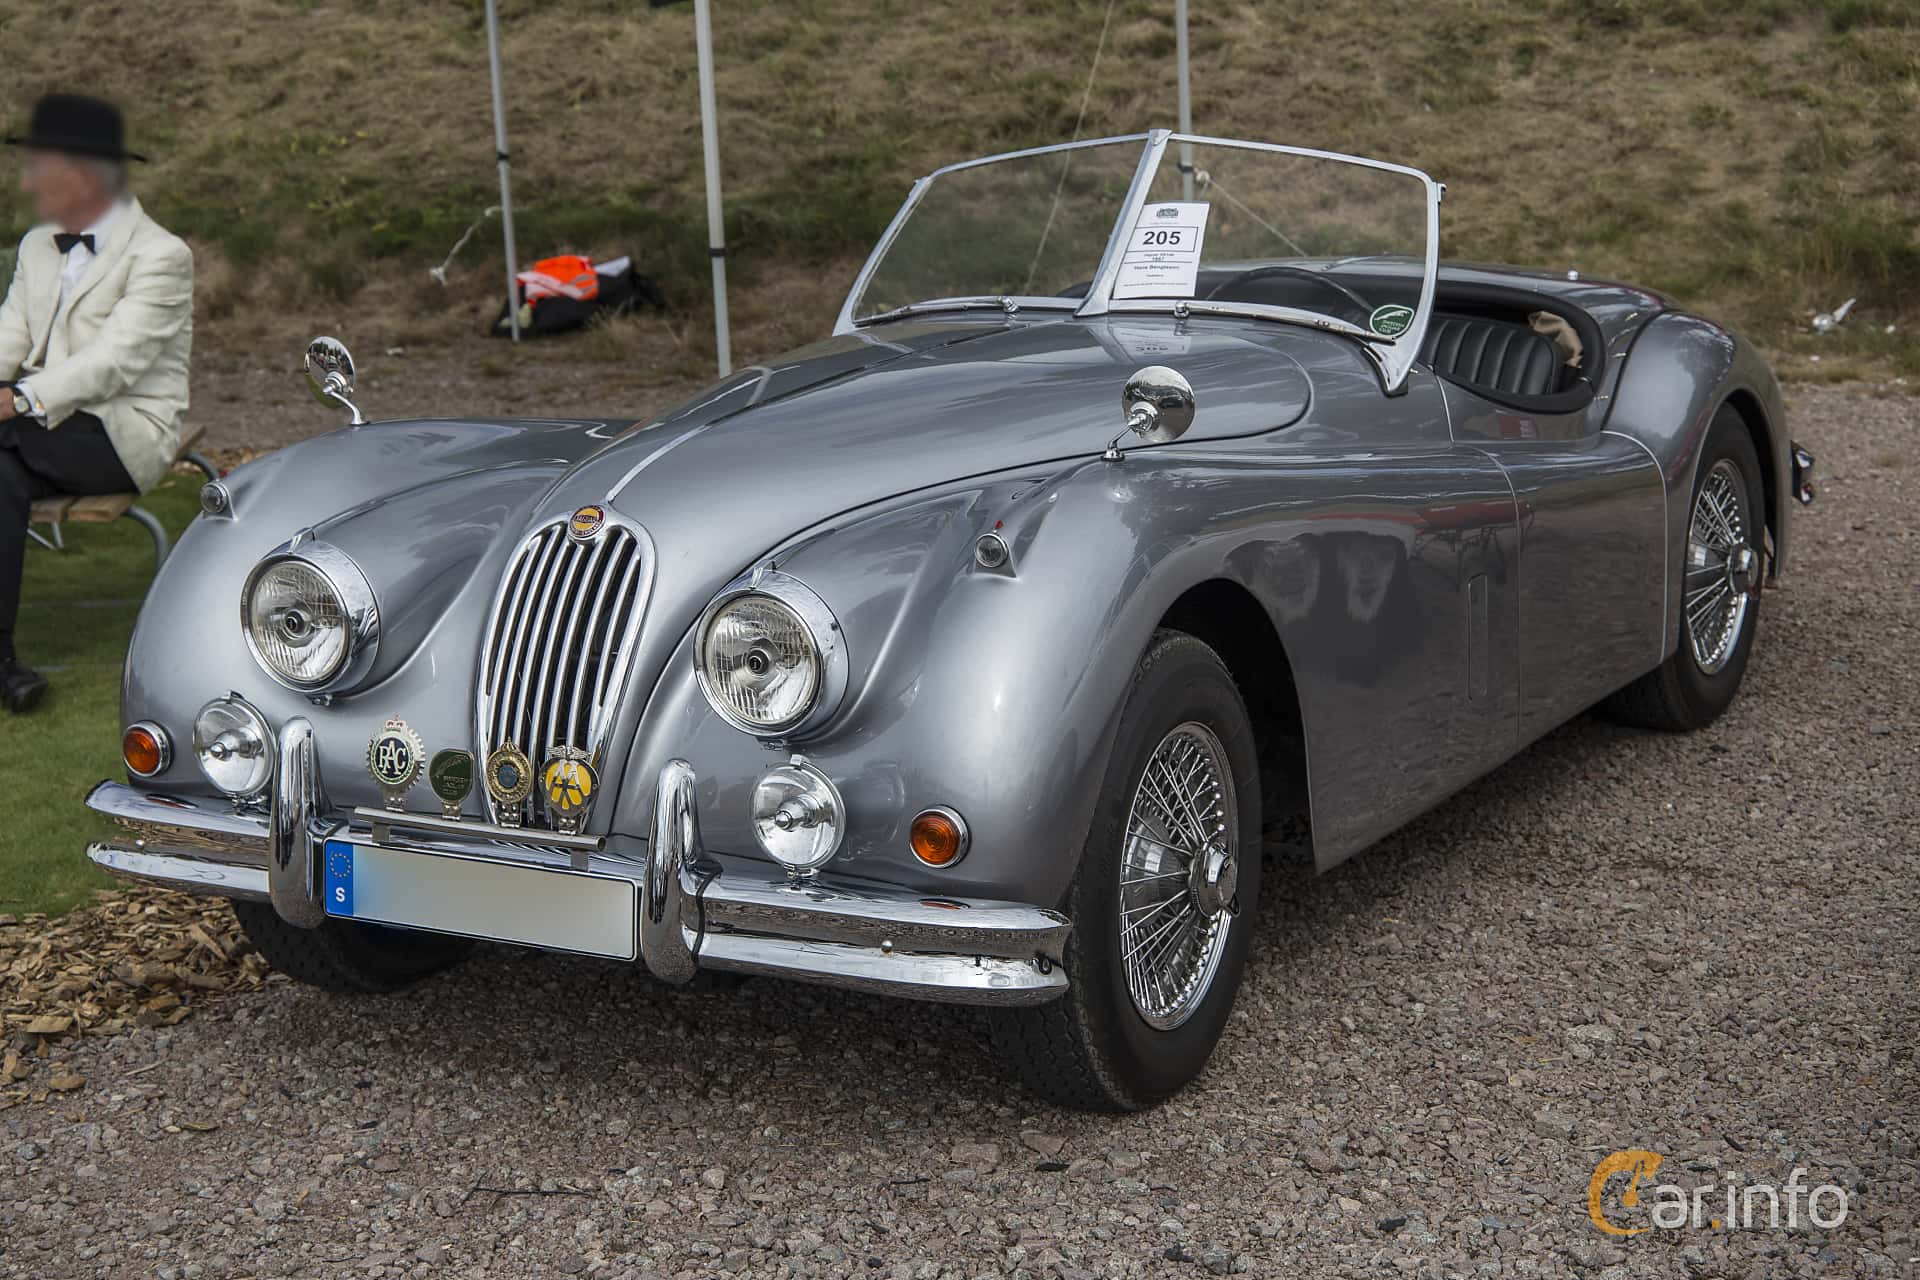 Front/Side Of Jaguar XK140 Roadster 3.4 Manual, 193ps, 1957 At Nostalgia  Racing